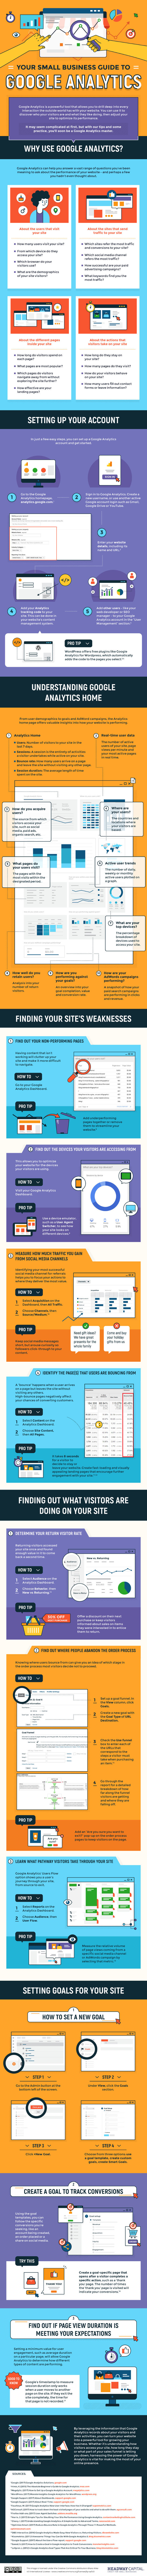 Infographic - Guide to Using Google Analytics